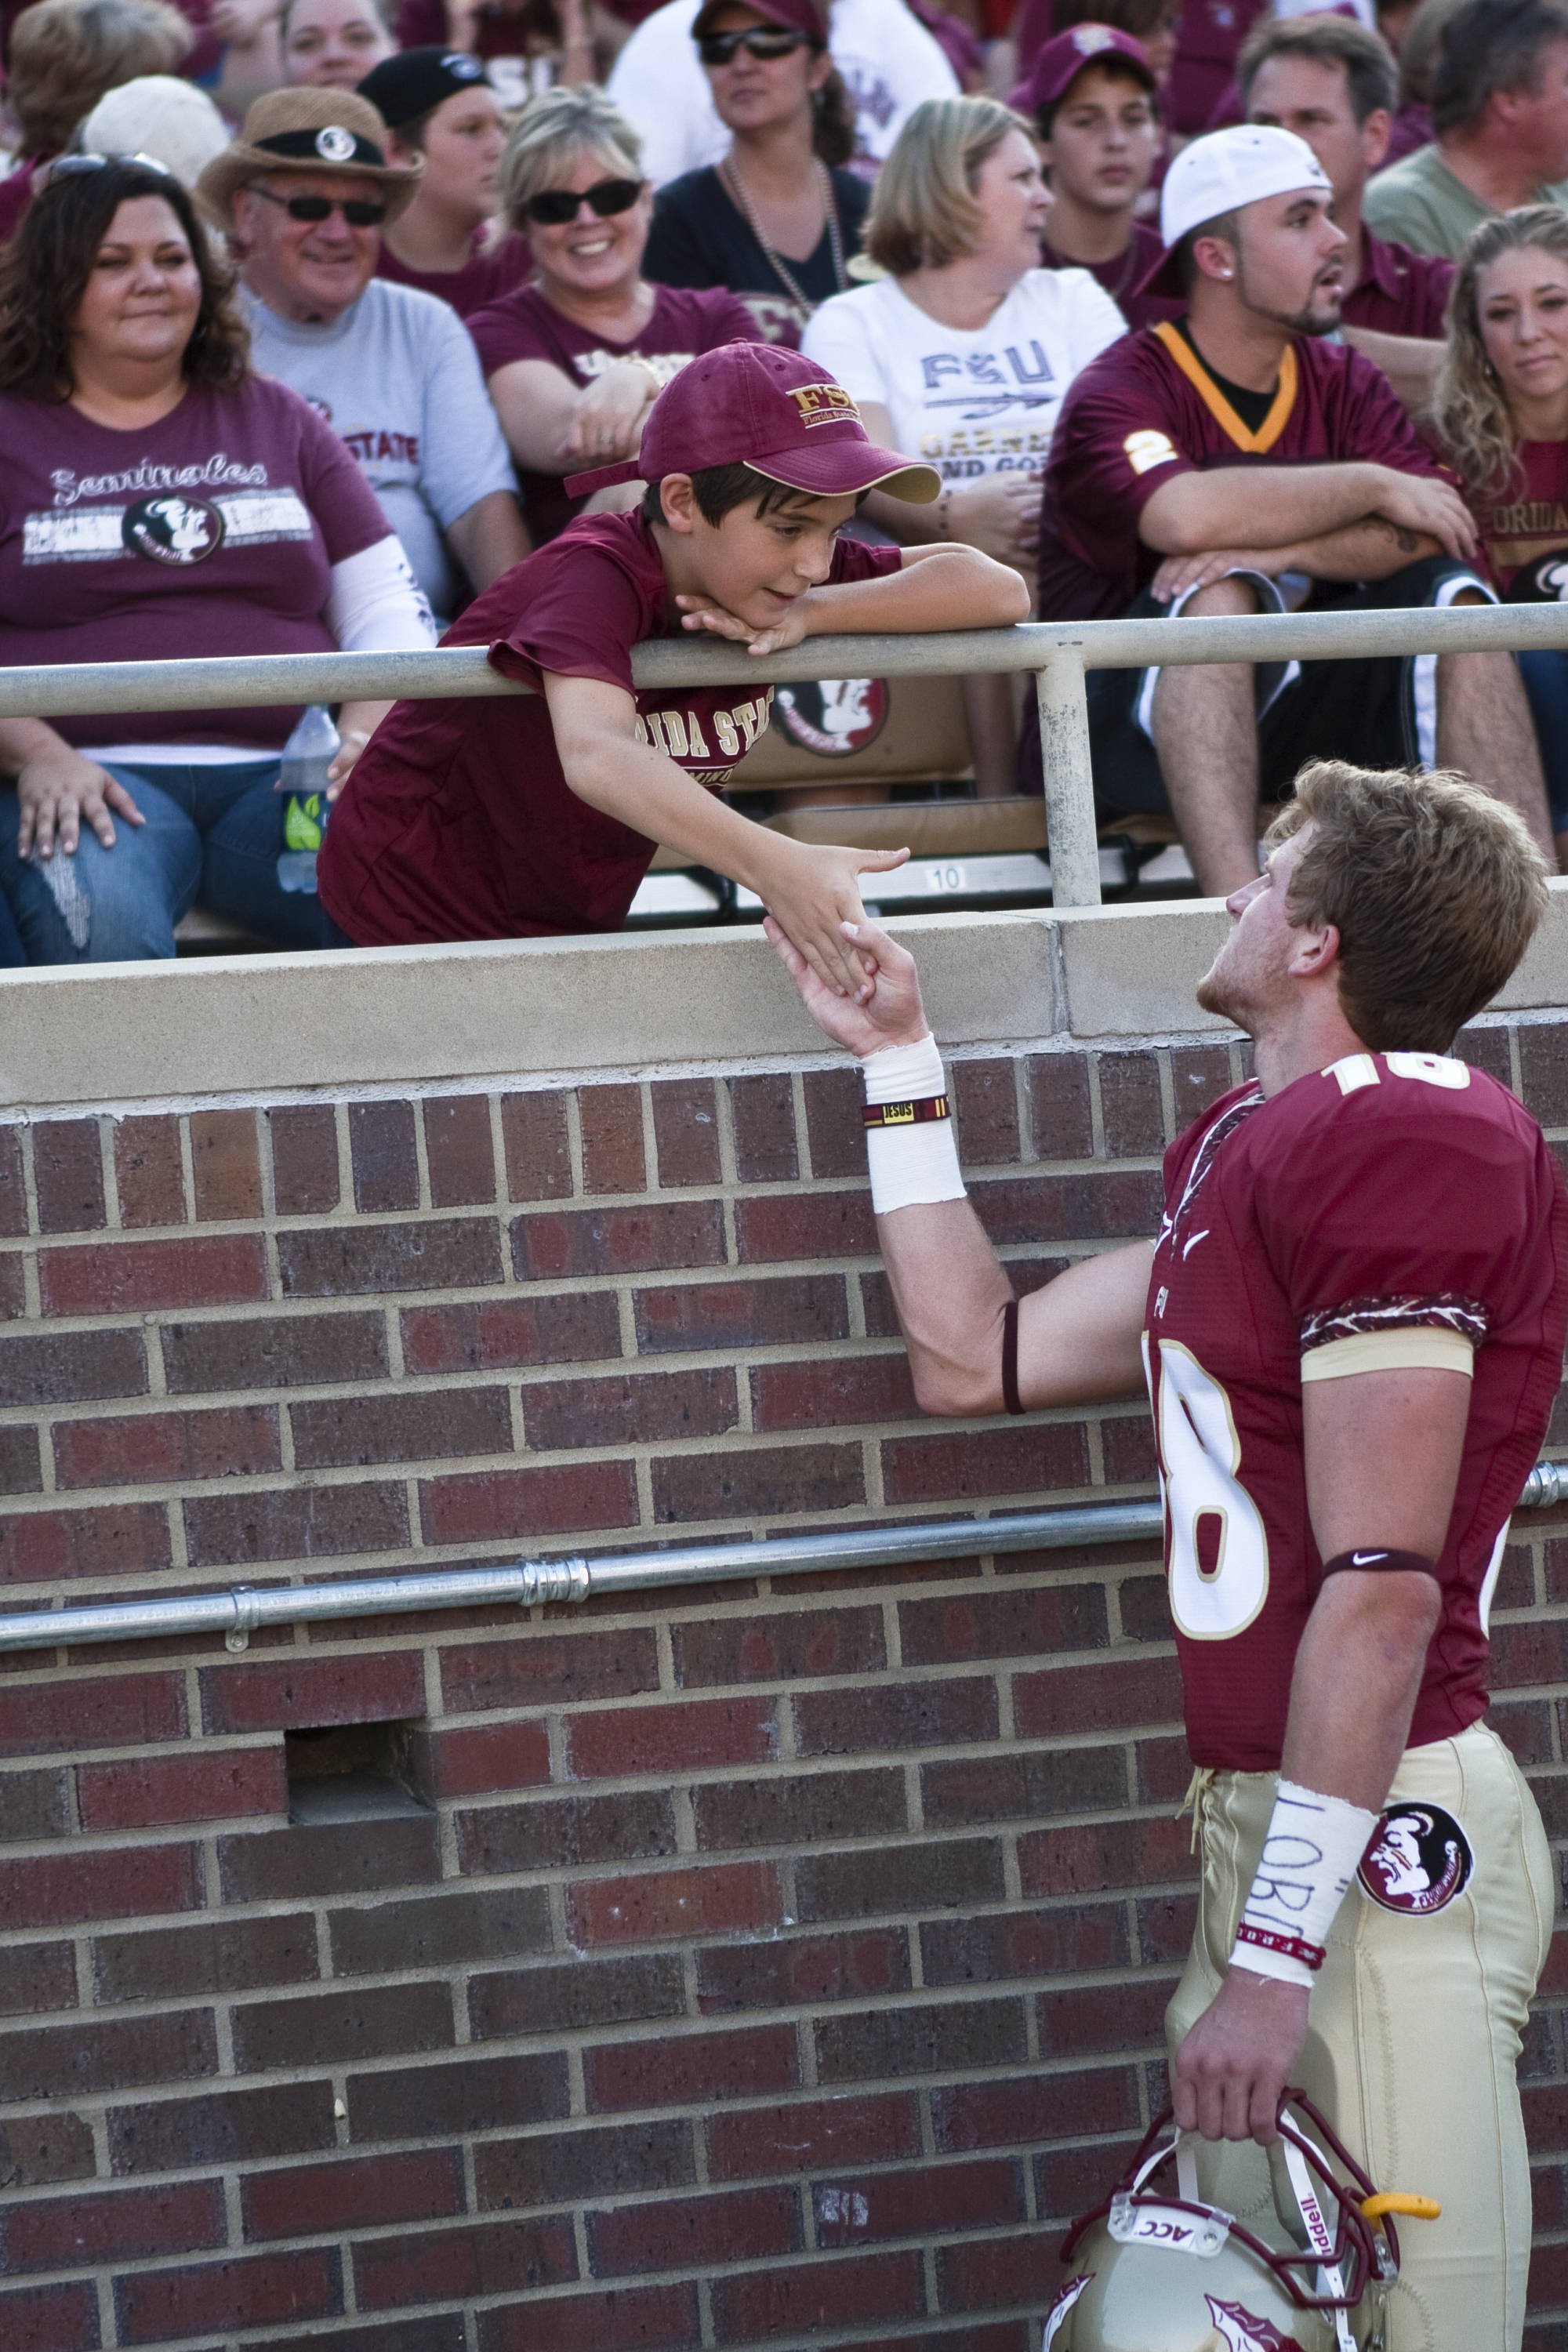 Dustin Hopkins (18) with a young Nole fan